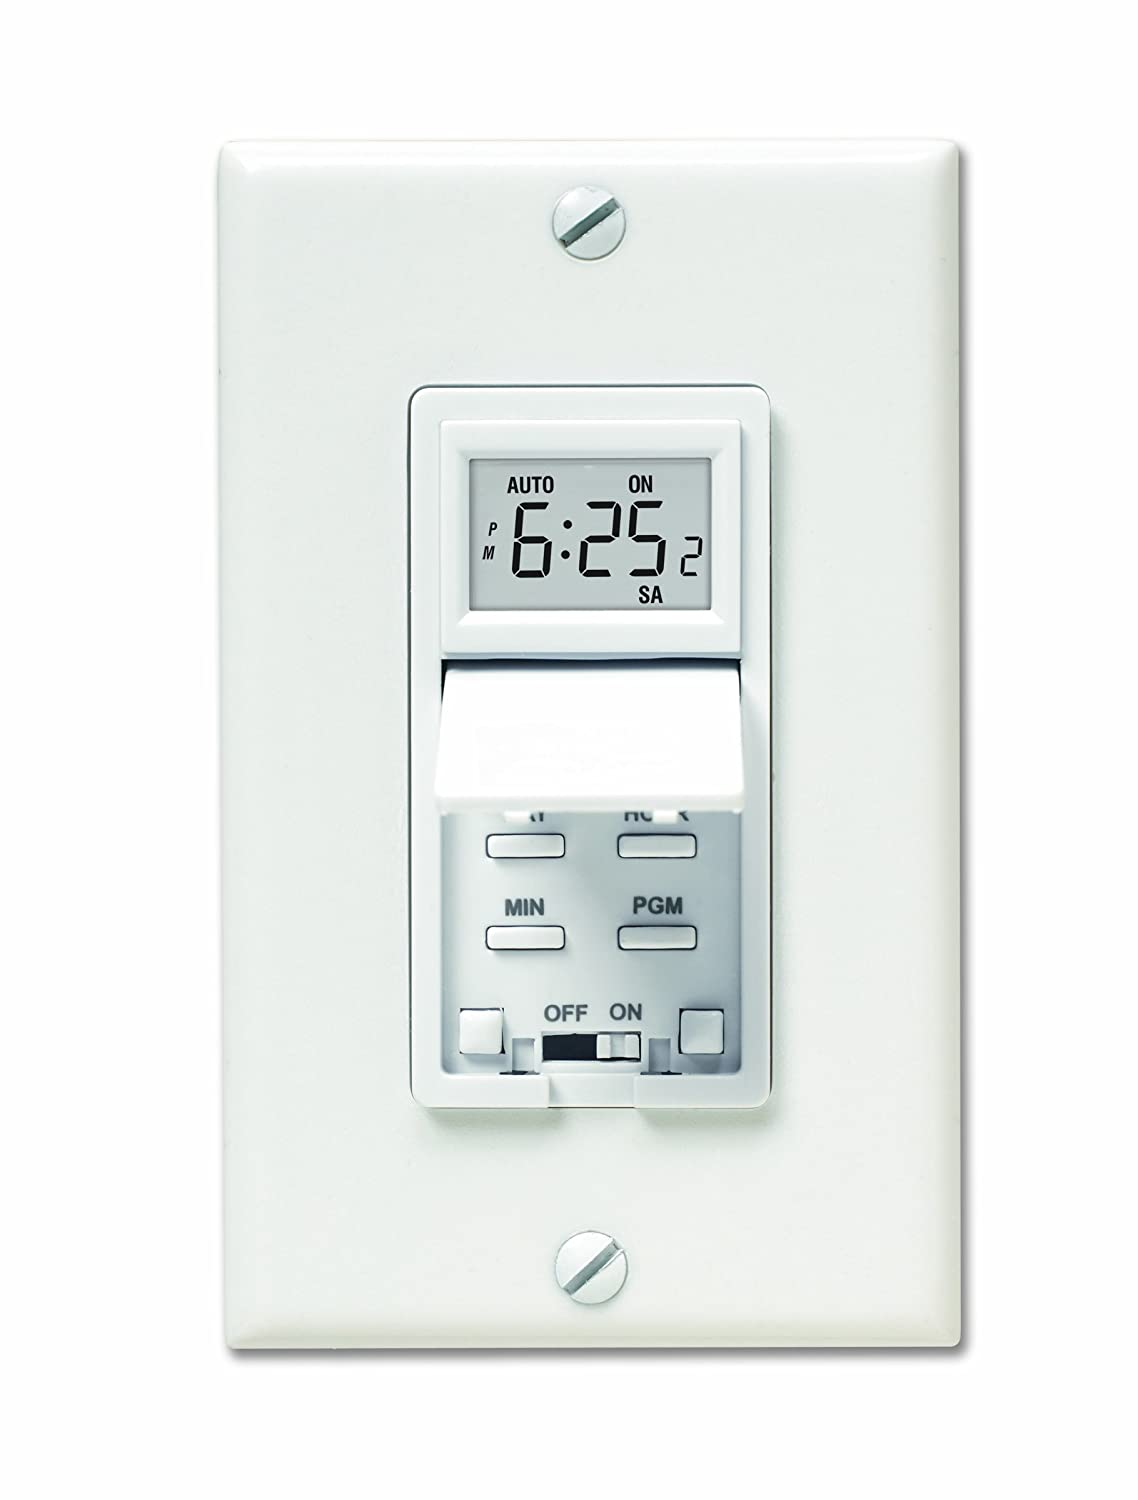 Amazon.com: Honeywell RPLS530A 7-Day Programmable Timer Switch ...